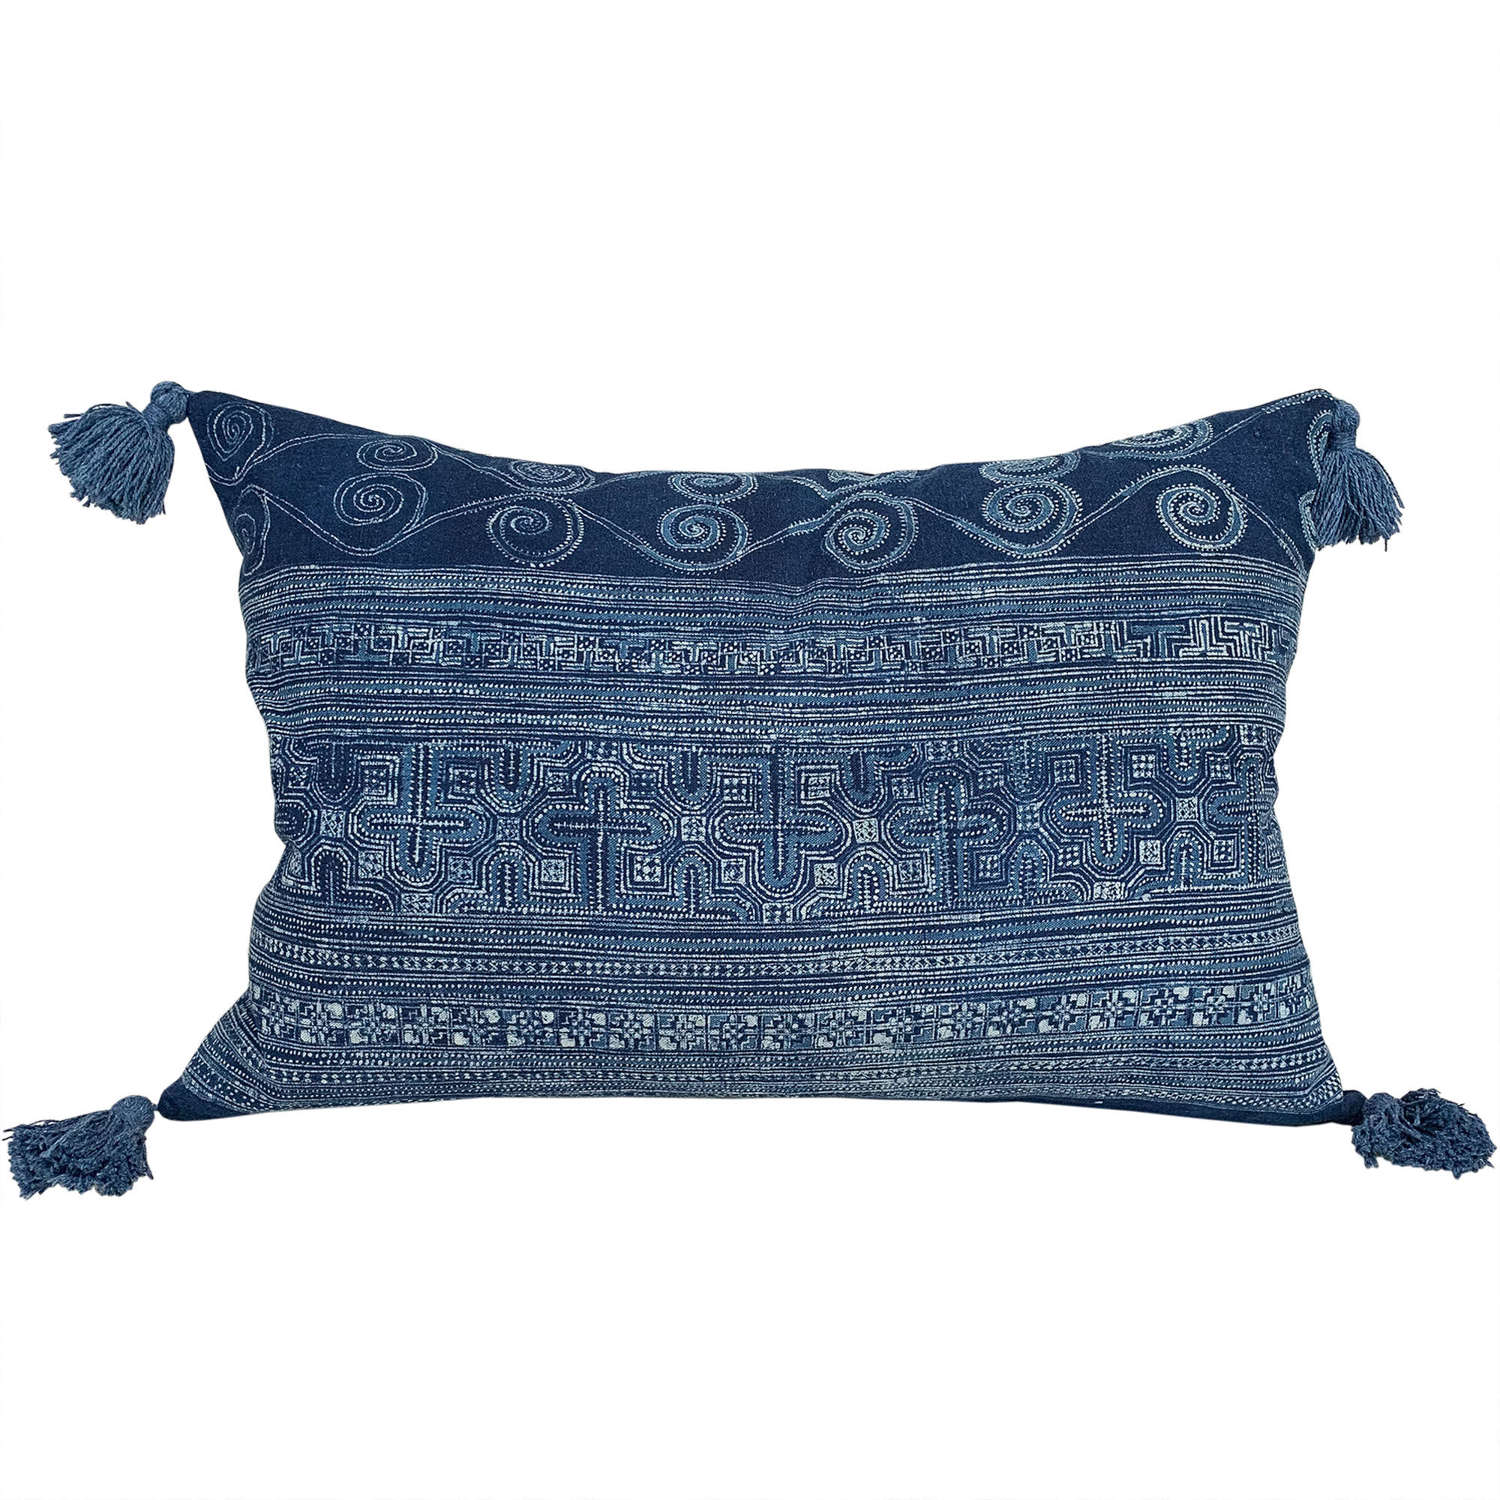 Miao batik cushions with tassels